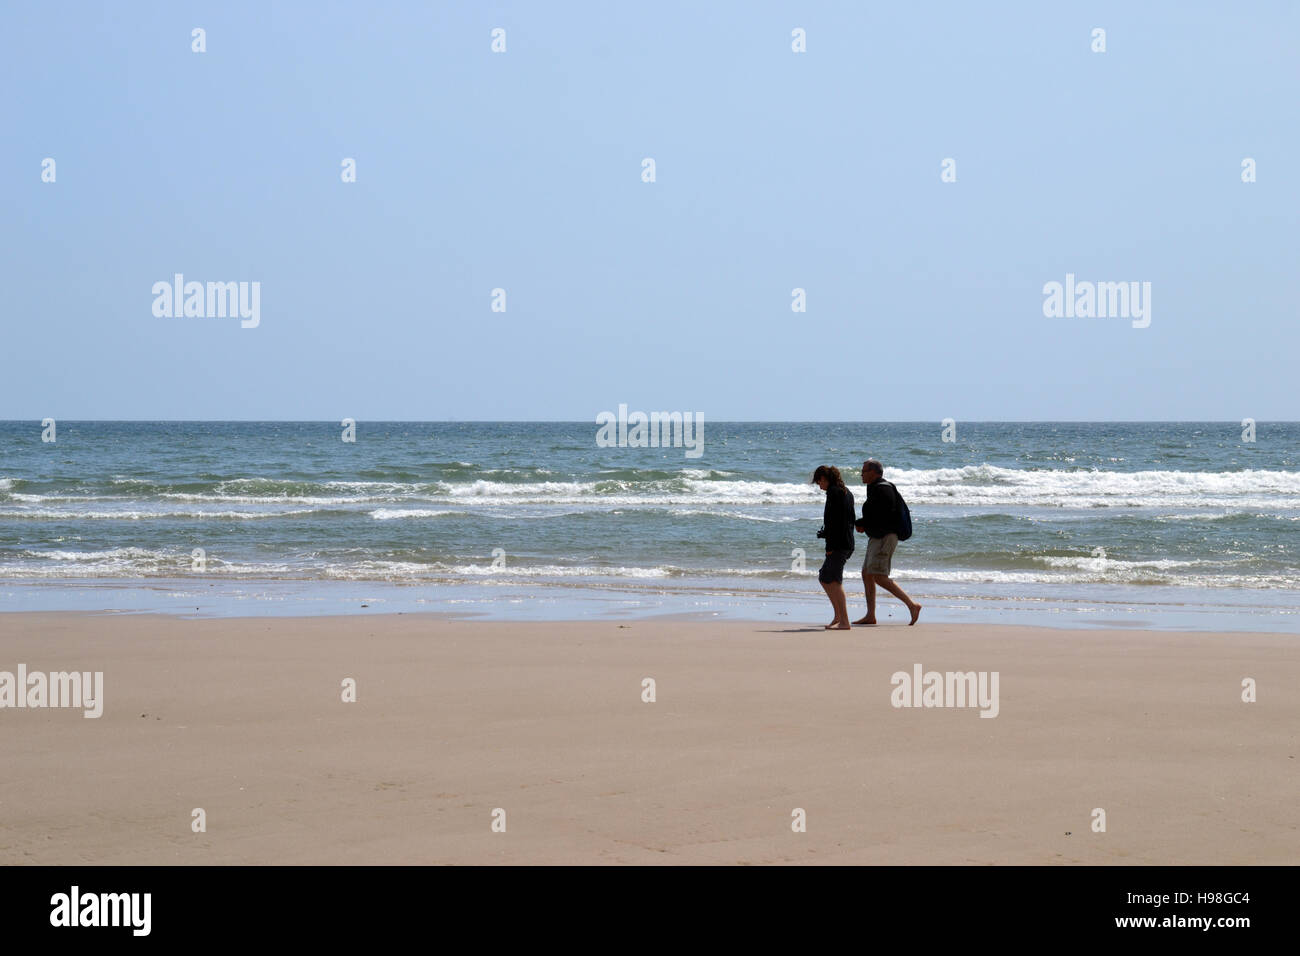 A man and woman walking barefoot along a deserted beach in Wales with waves breaking in the background. Stock Photo